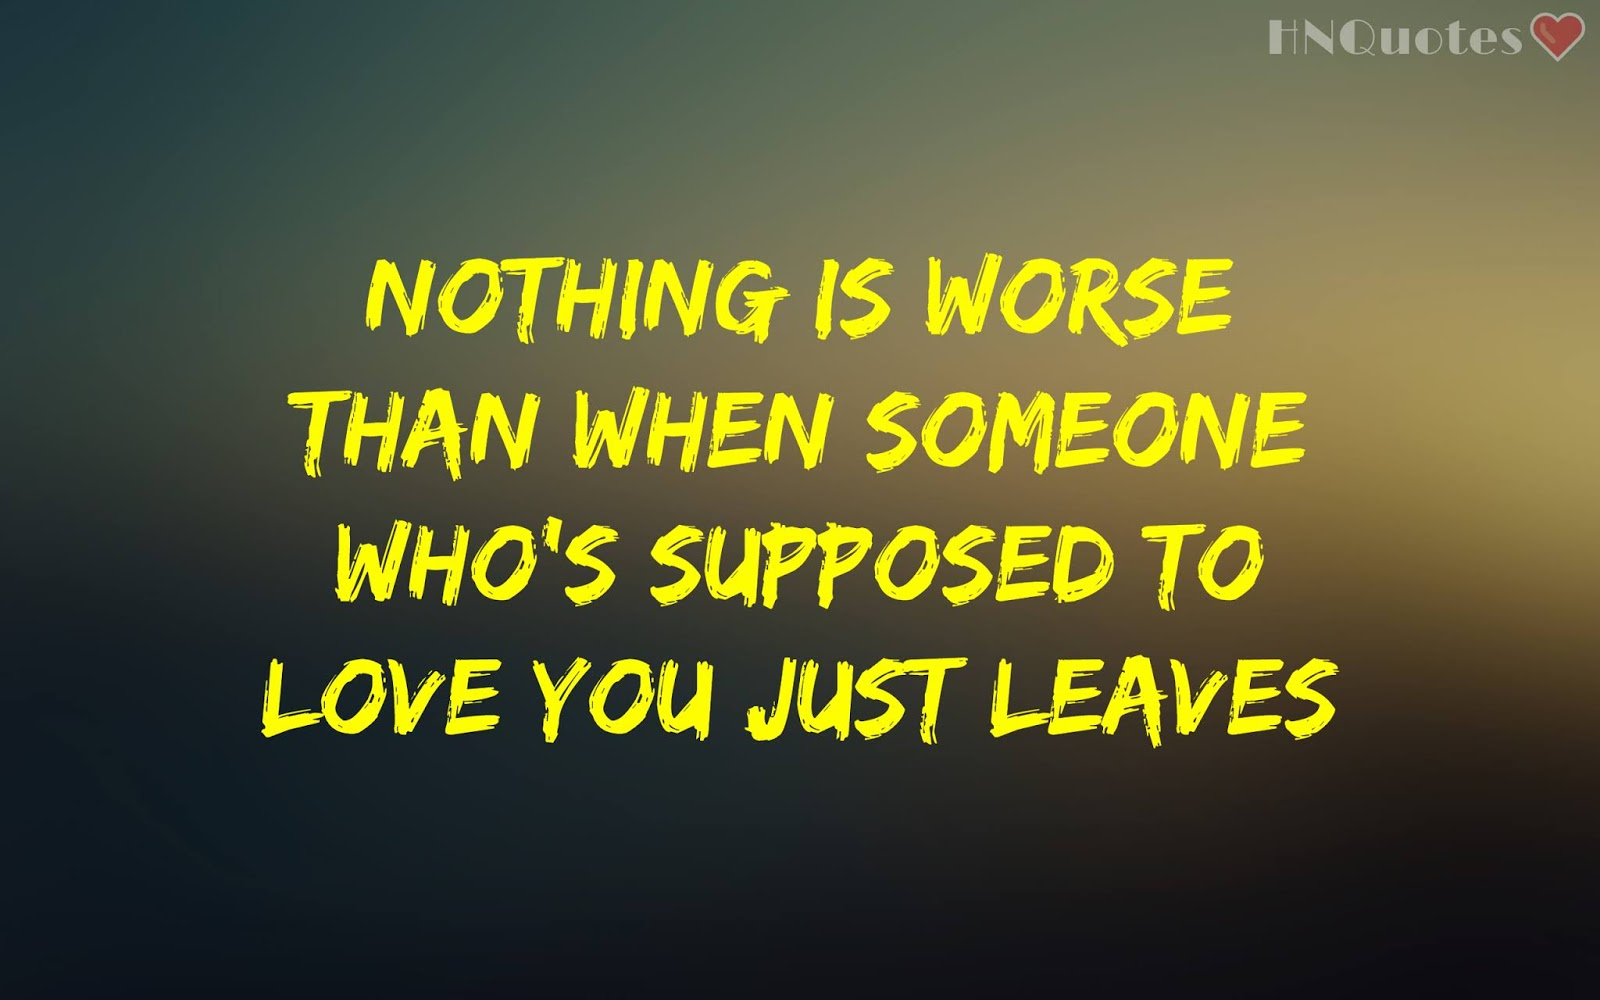 Sad-&-Emotional-Quotes-on-Life-51-Best-Emotional-Quotes[HNQuotes]